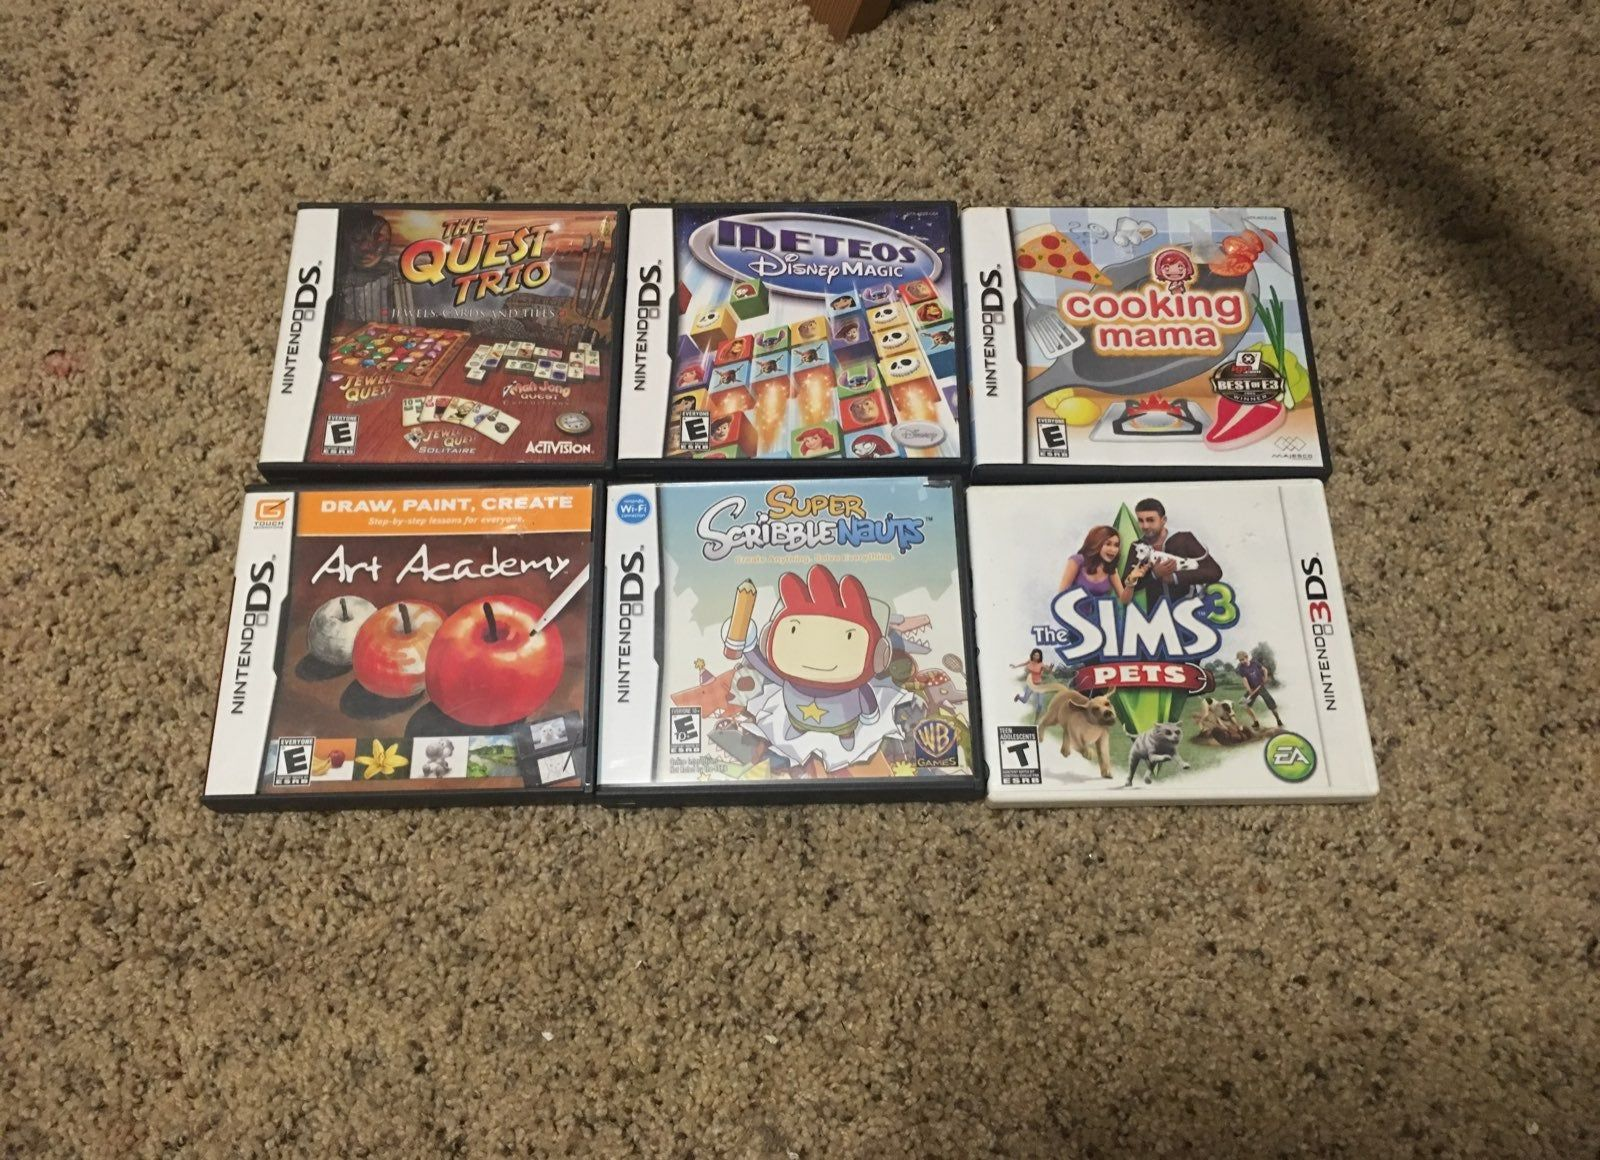 I have 5 DS games the quest trio (jewel quest, mah jong